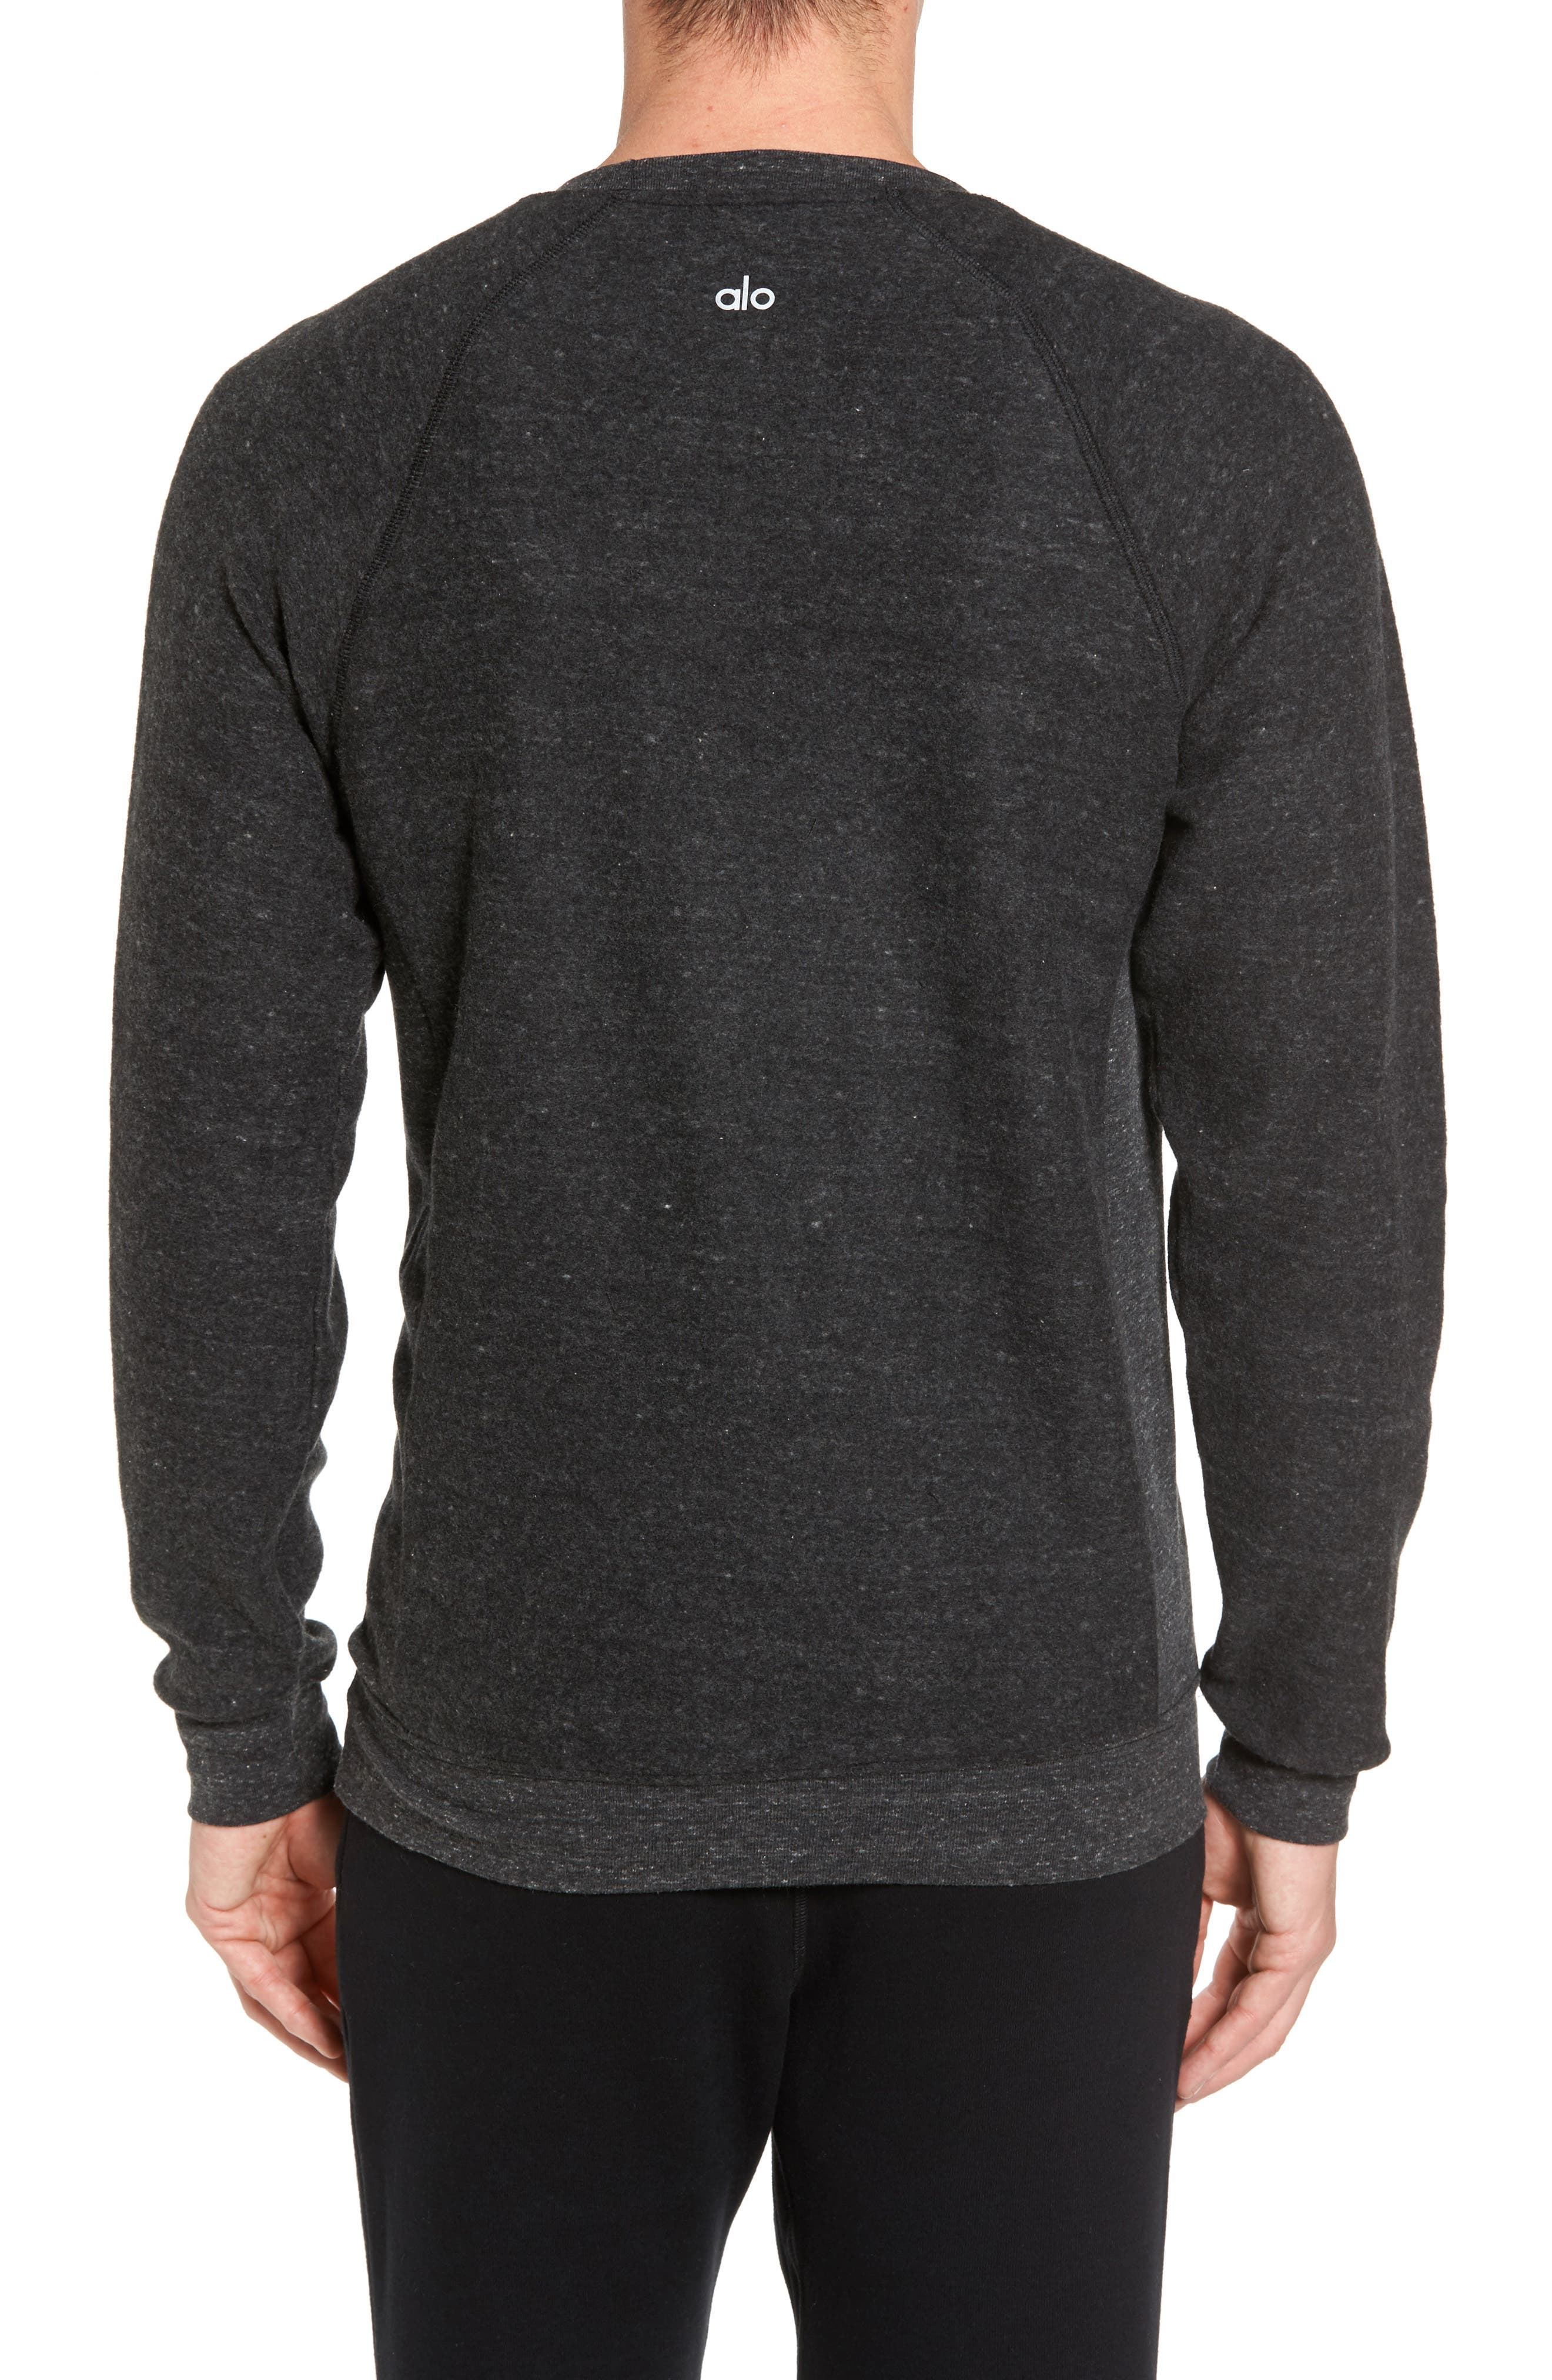 Alternate Image 2  - Alo Relaxed Fit Felted Sweatshirt